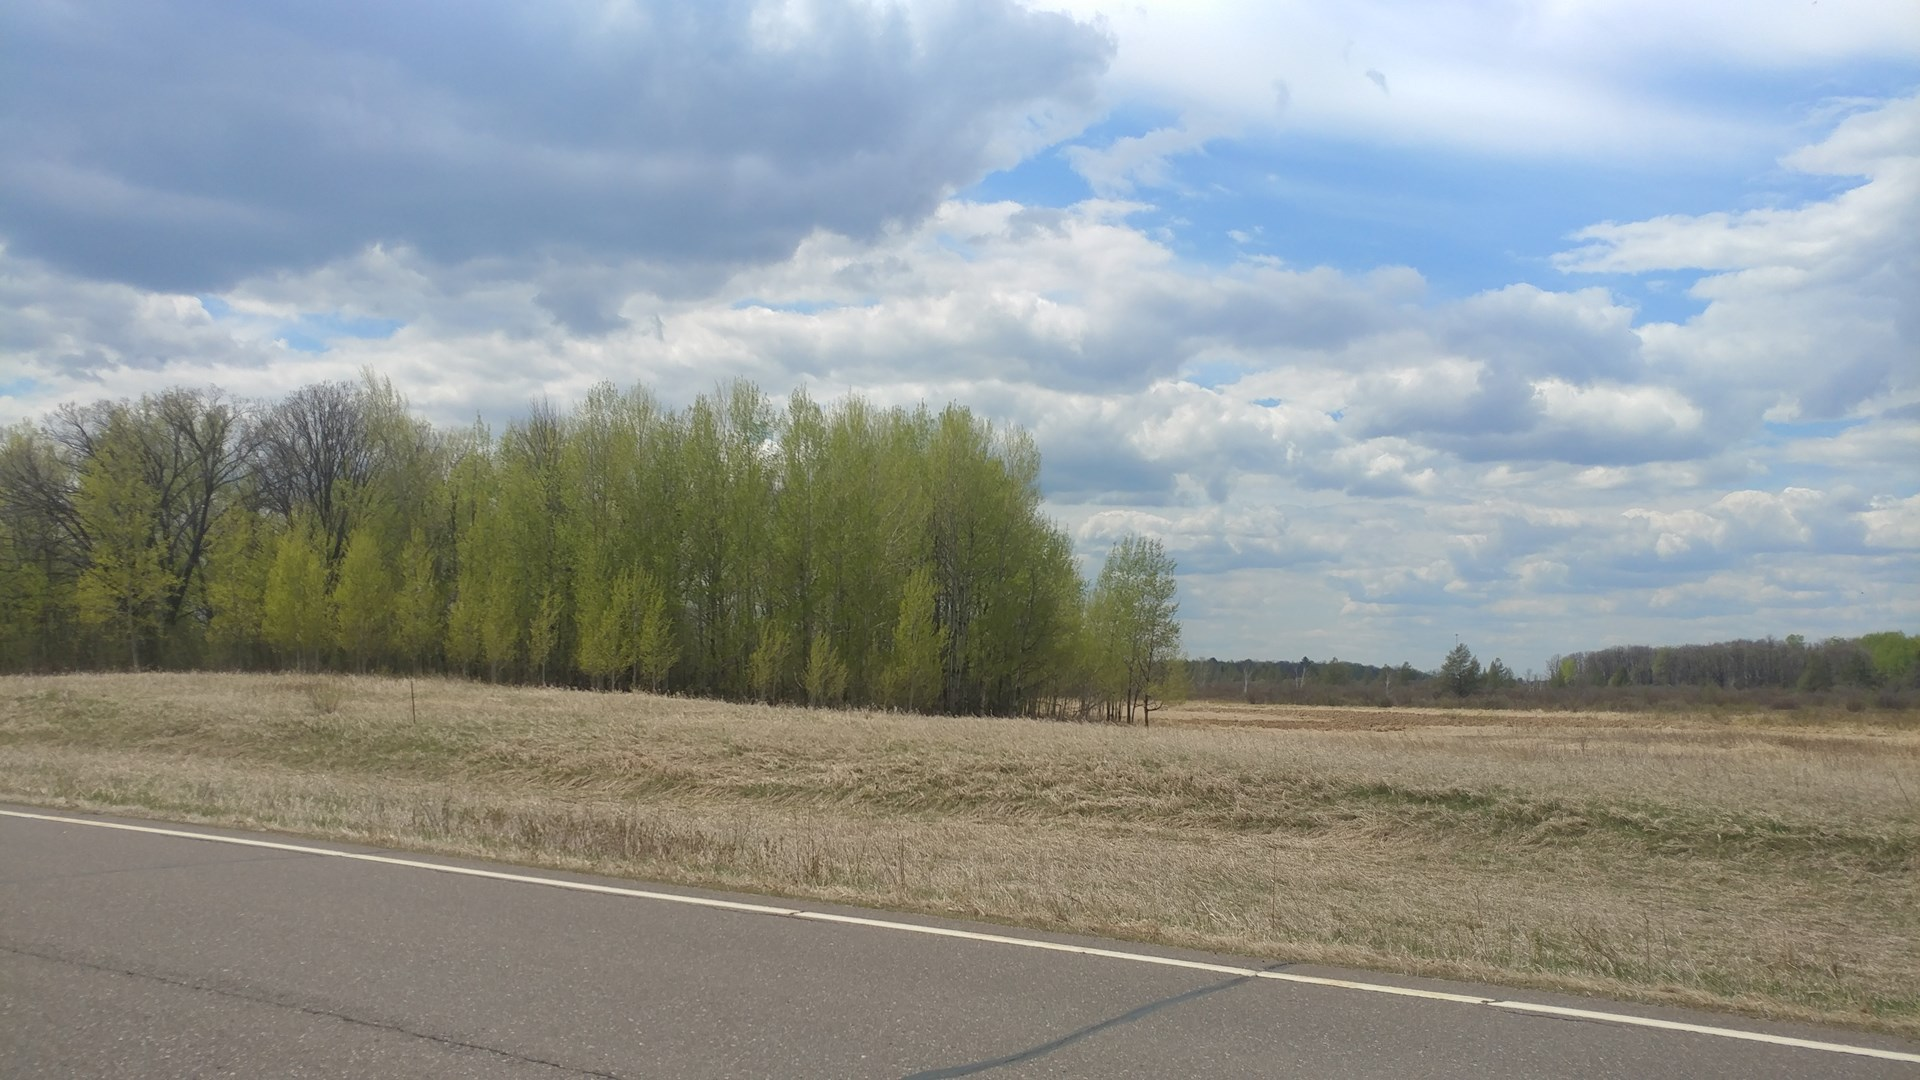 10 Acres For Sale in Pine County to Build, Hunt, Camp, MN